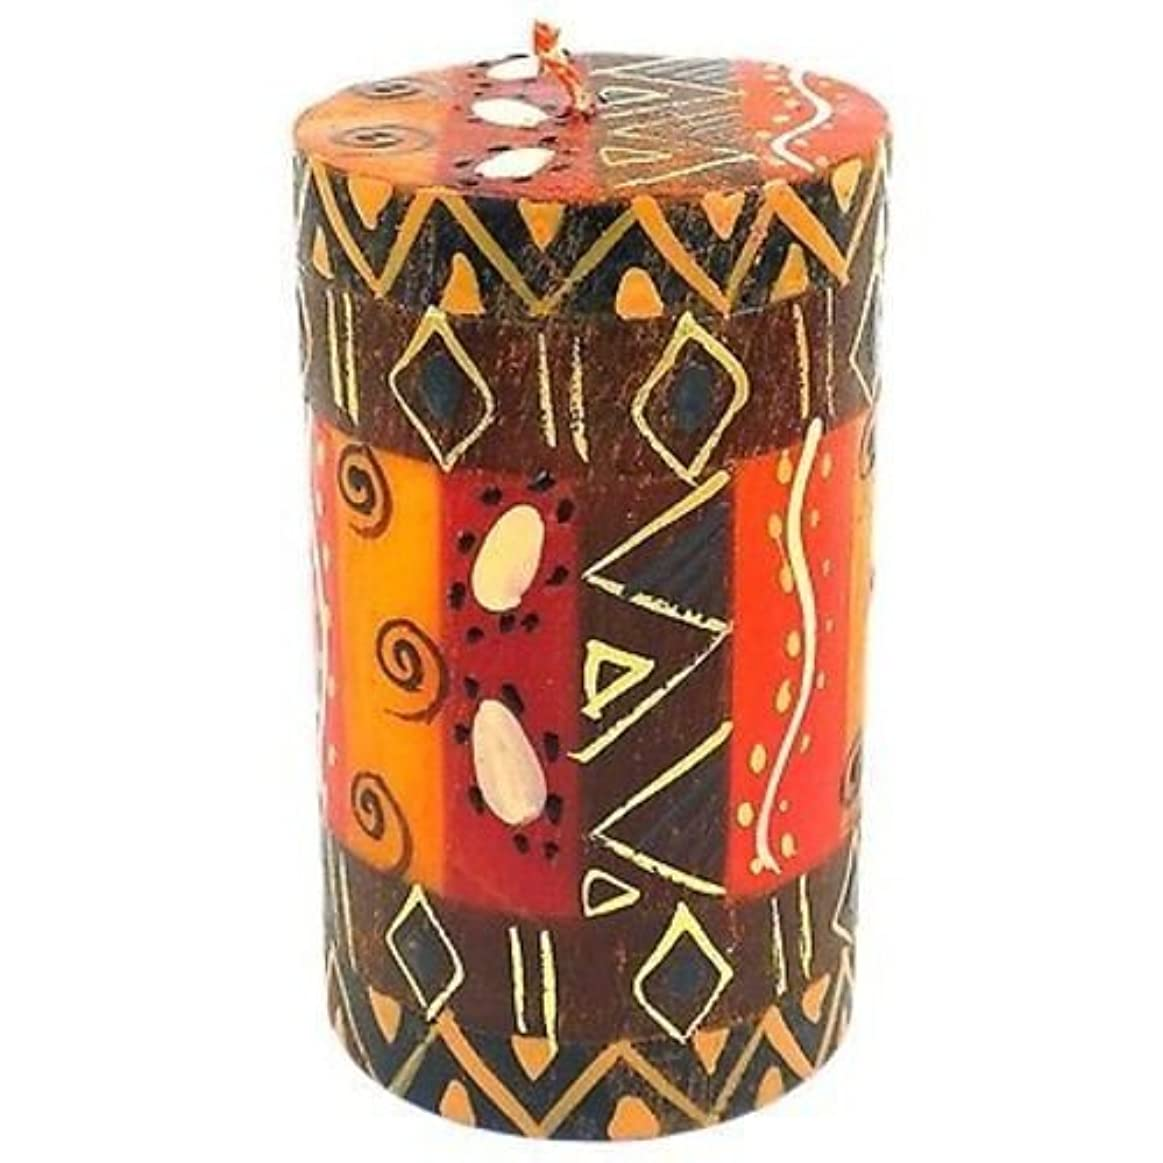 環境に優しい疲れた半島Nobunto Single Boxed Hand-Painted Pillar Candle - Bongazi Design